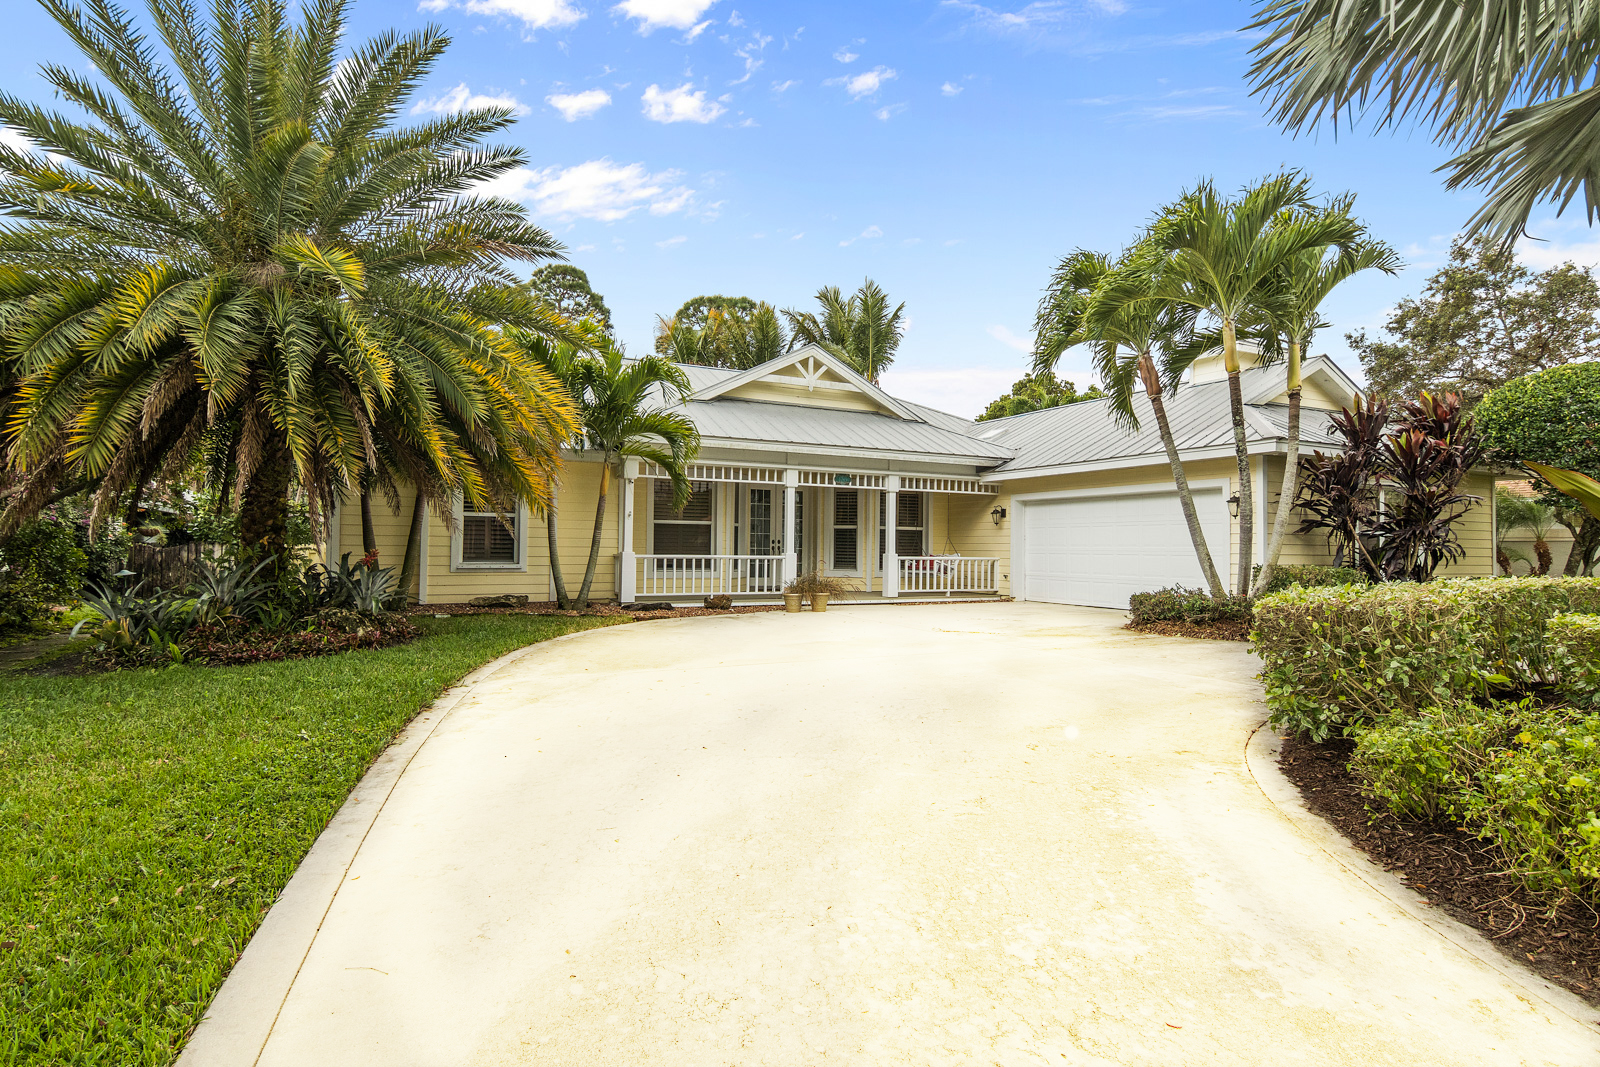 Single Family Home for Sale at 8749 Woodwind Street 8749 SE Woodwind Street Hobe Sound, Florida, 33455 United States